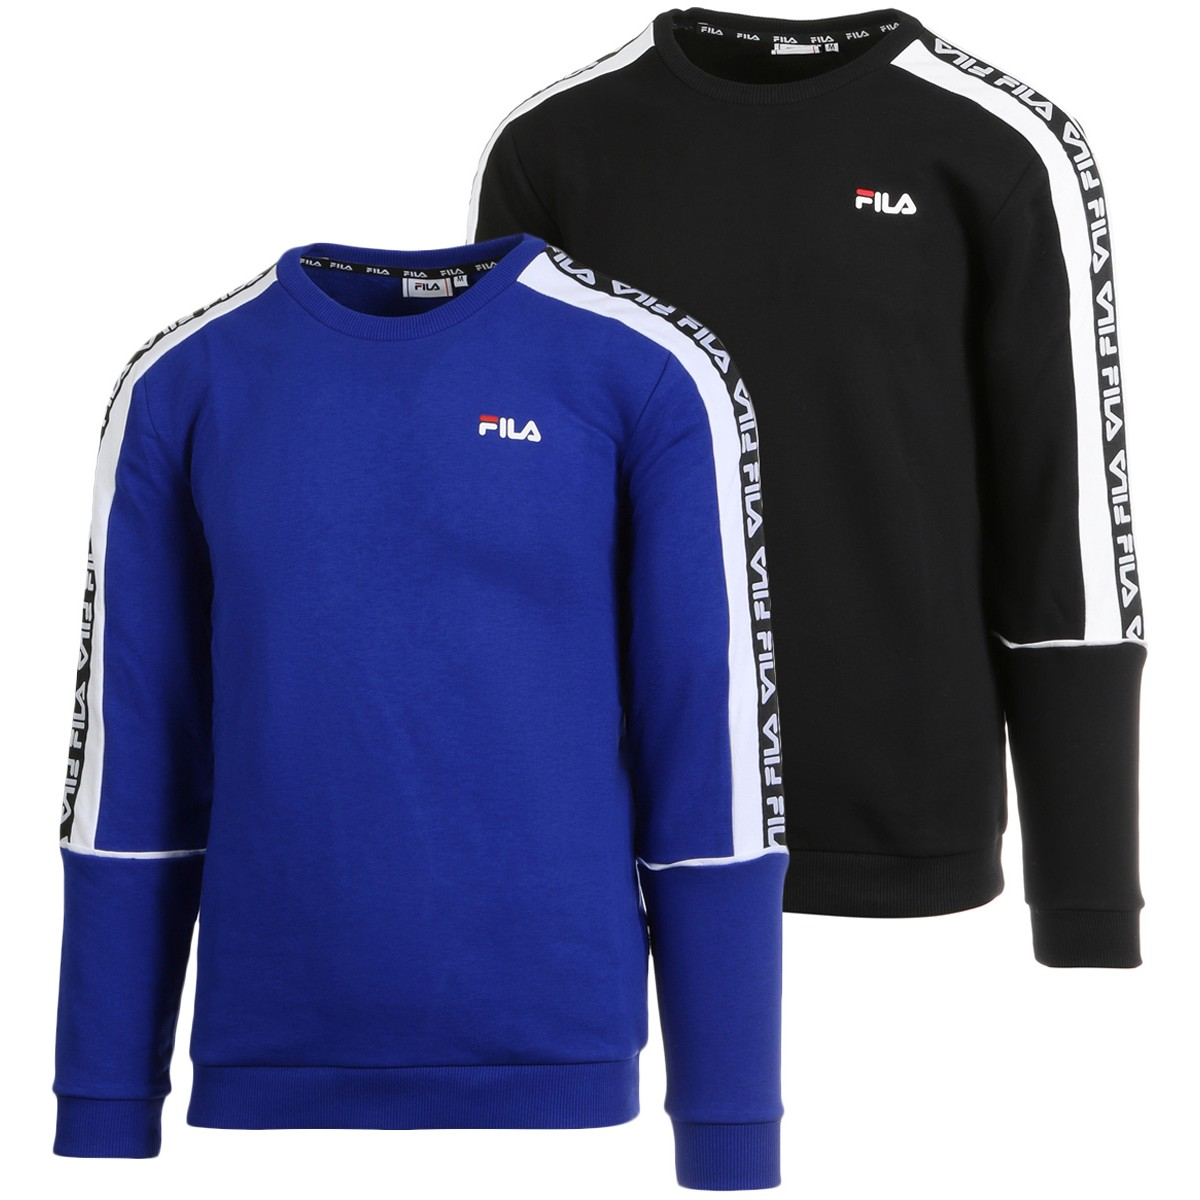 SWEAT FILA TEOM